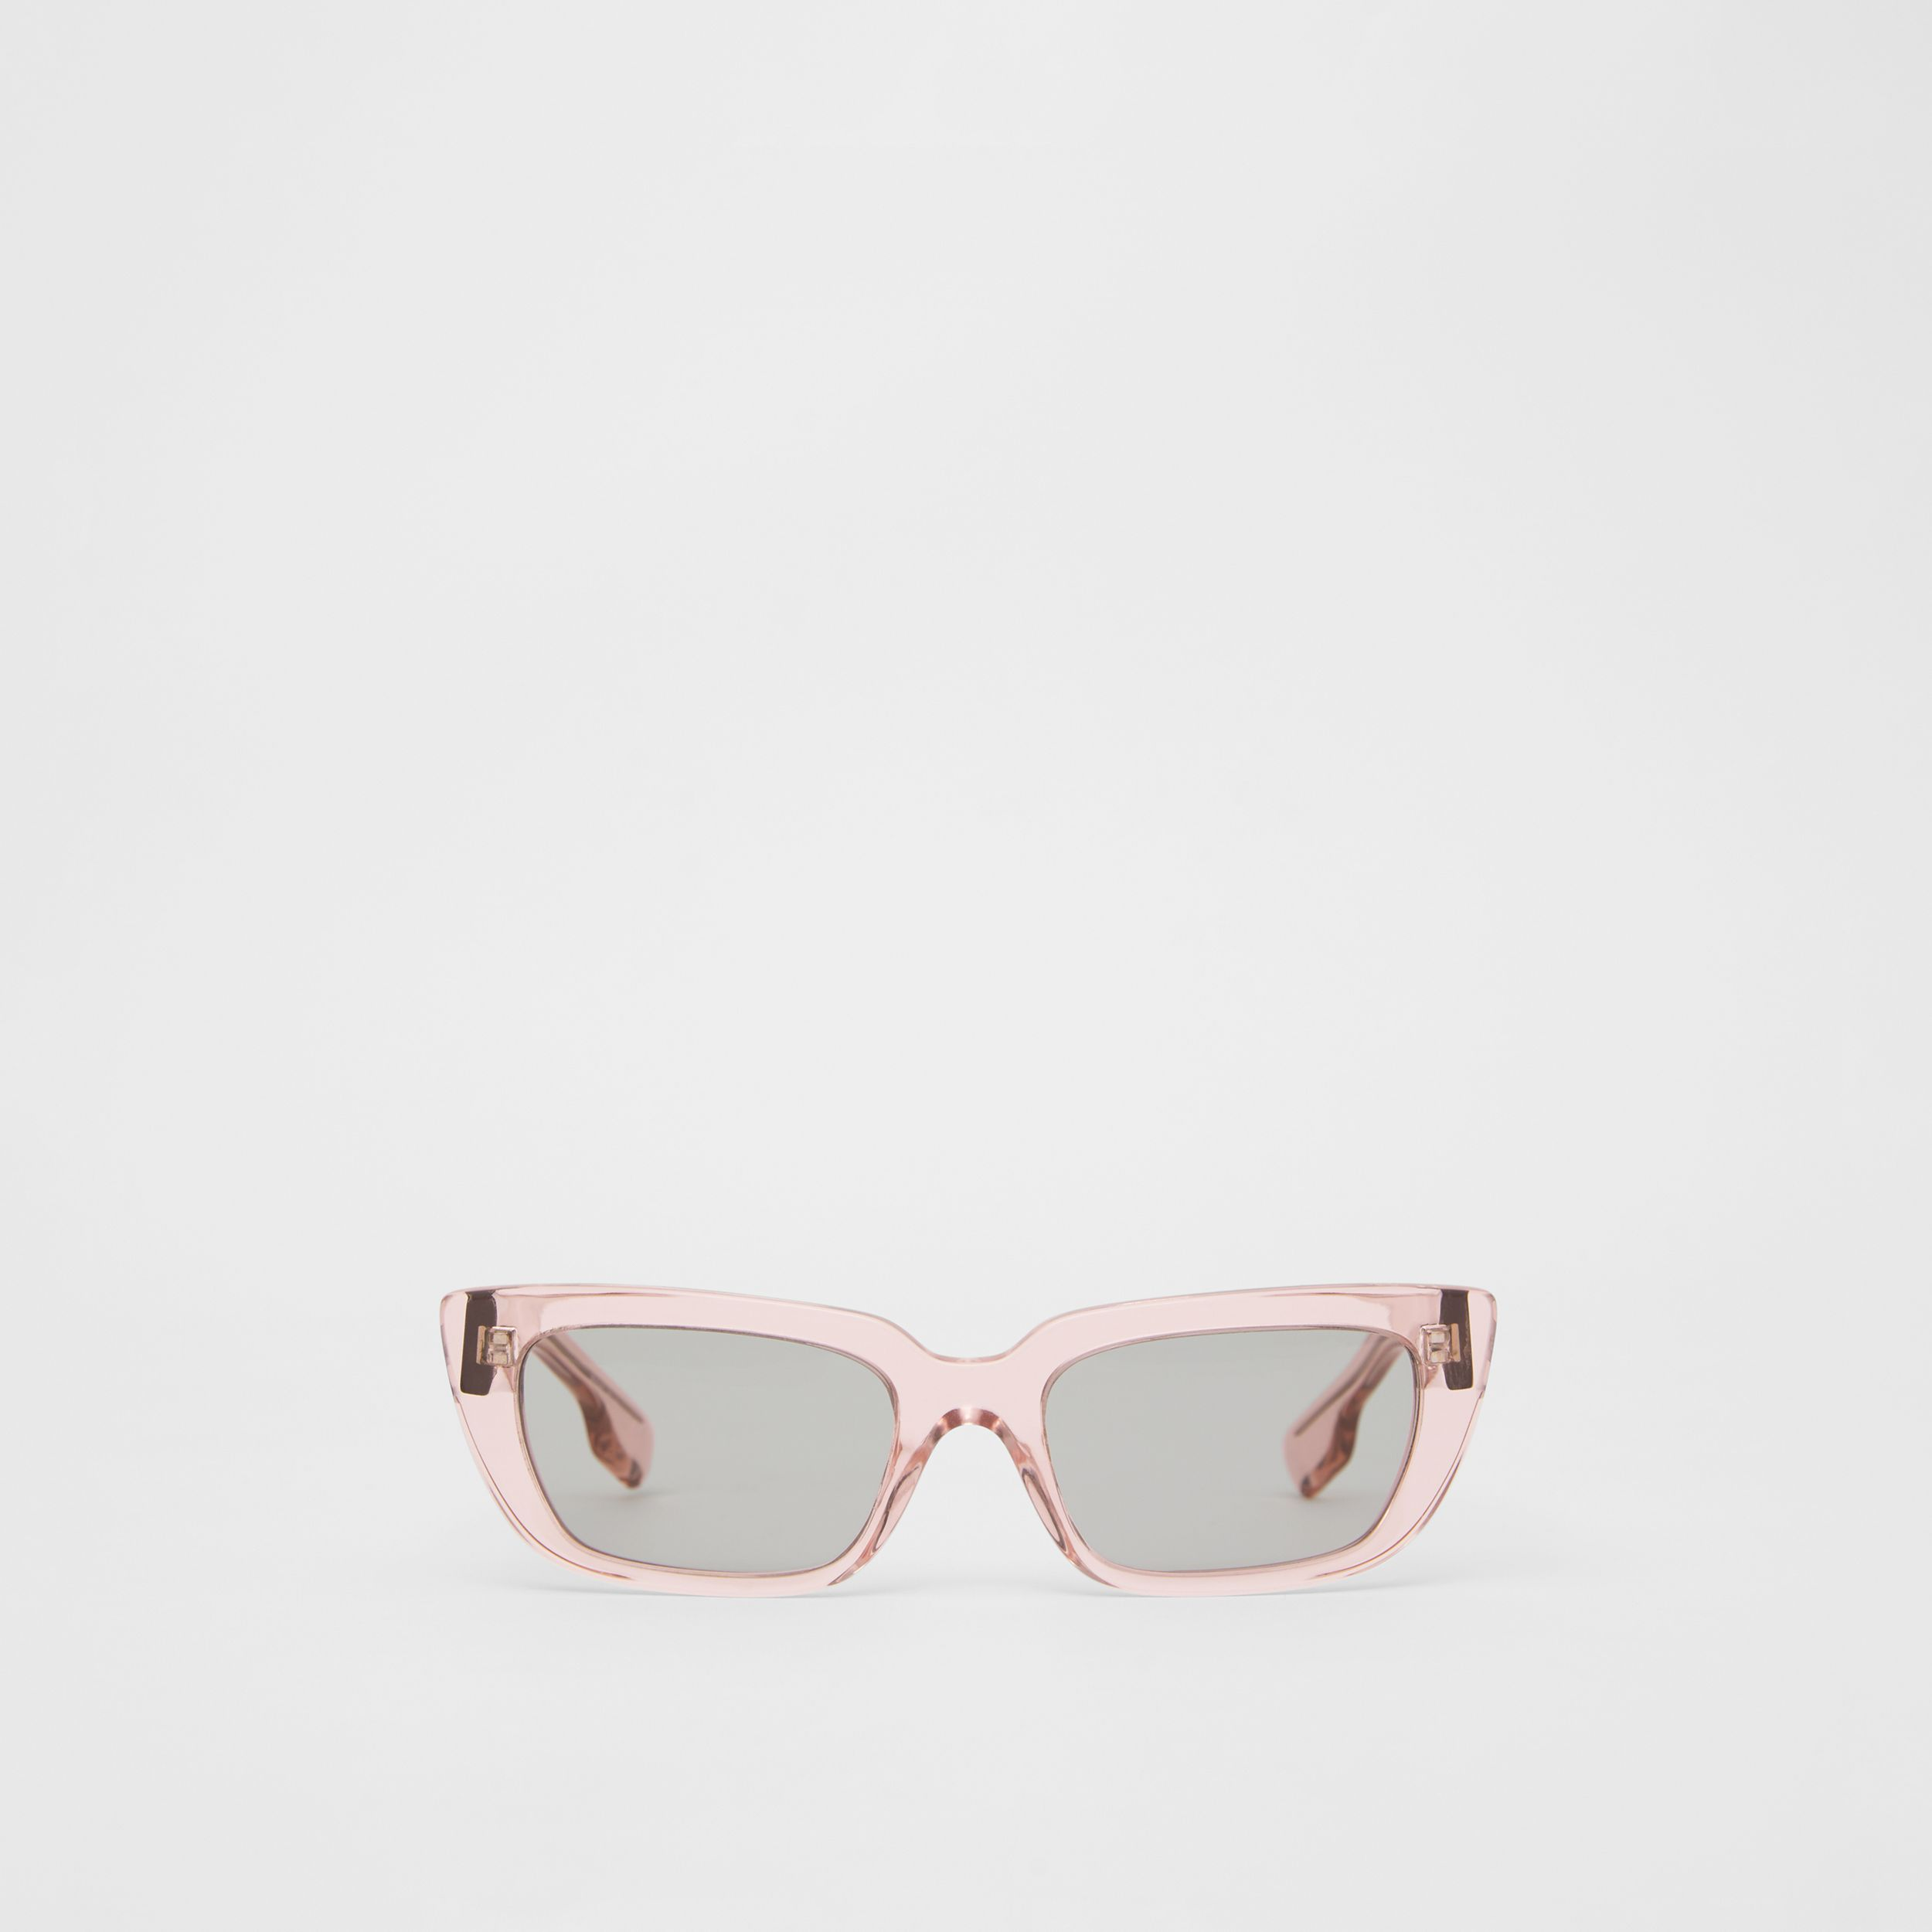 Bio-acetate Rectangular Frame Sunglasses in Light Pink - Women | Burberry Singapore - 1